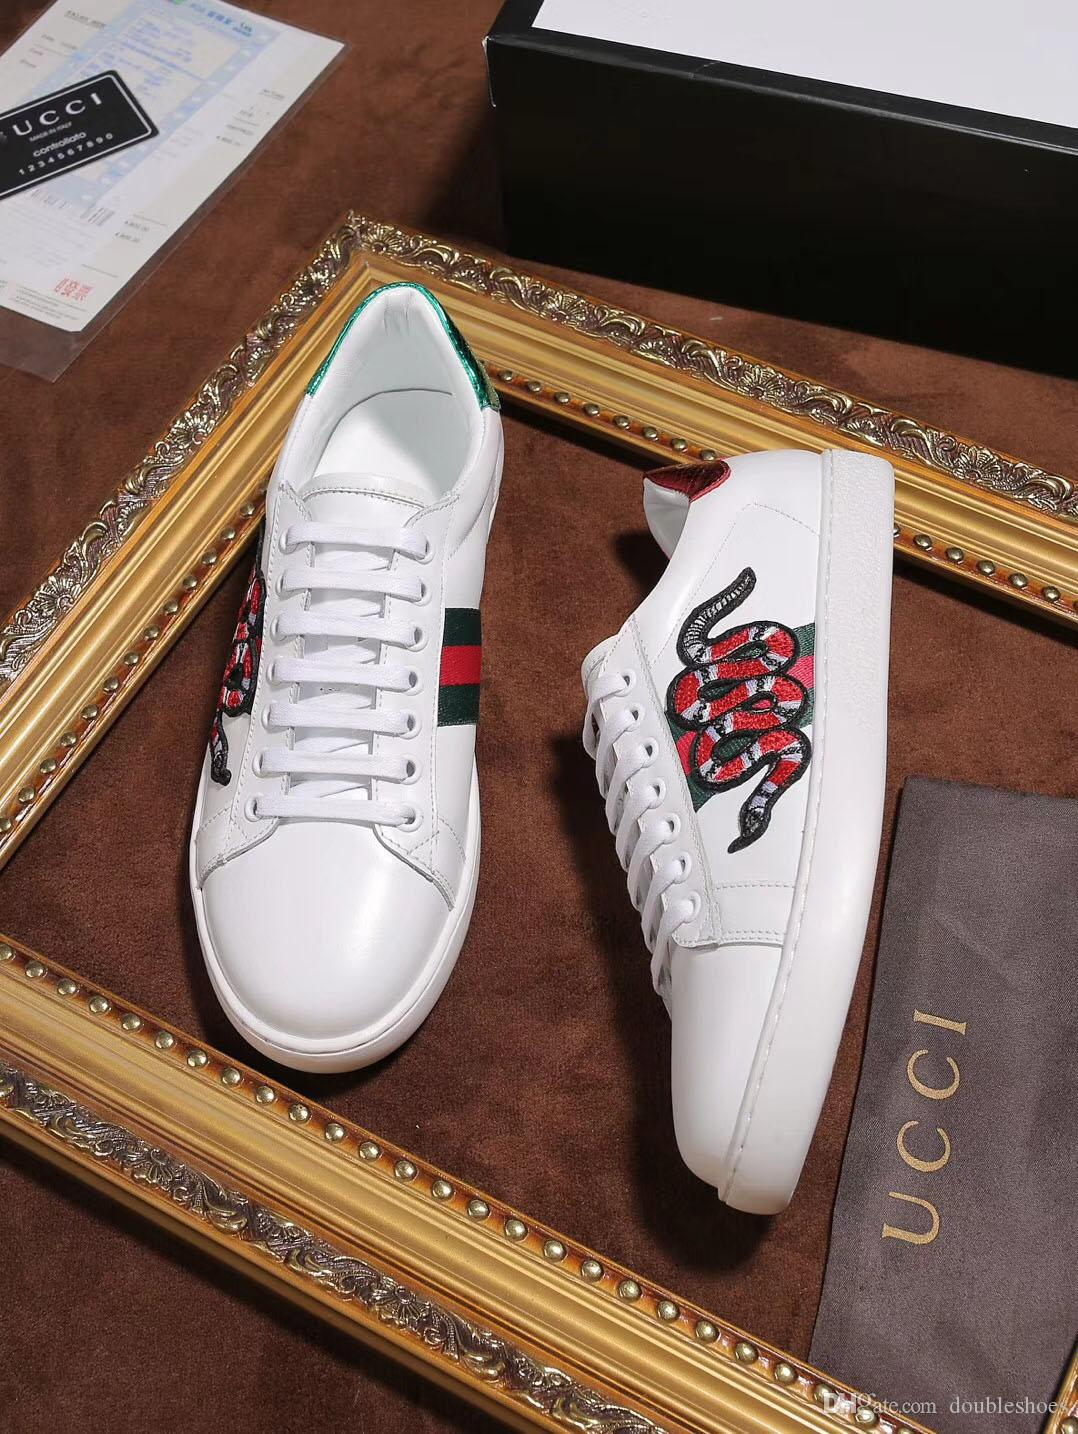 6e4bbd6e1aa2 Luxury designer men s high quality fashion snake embroidery small white  shoes of casual tennis sneakers shoes women s shoes big size shoe